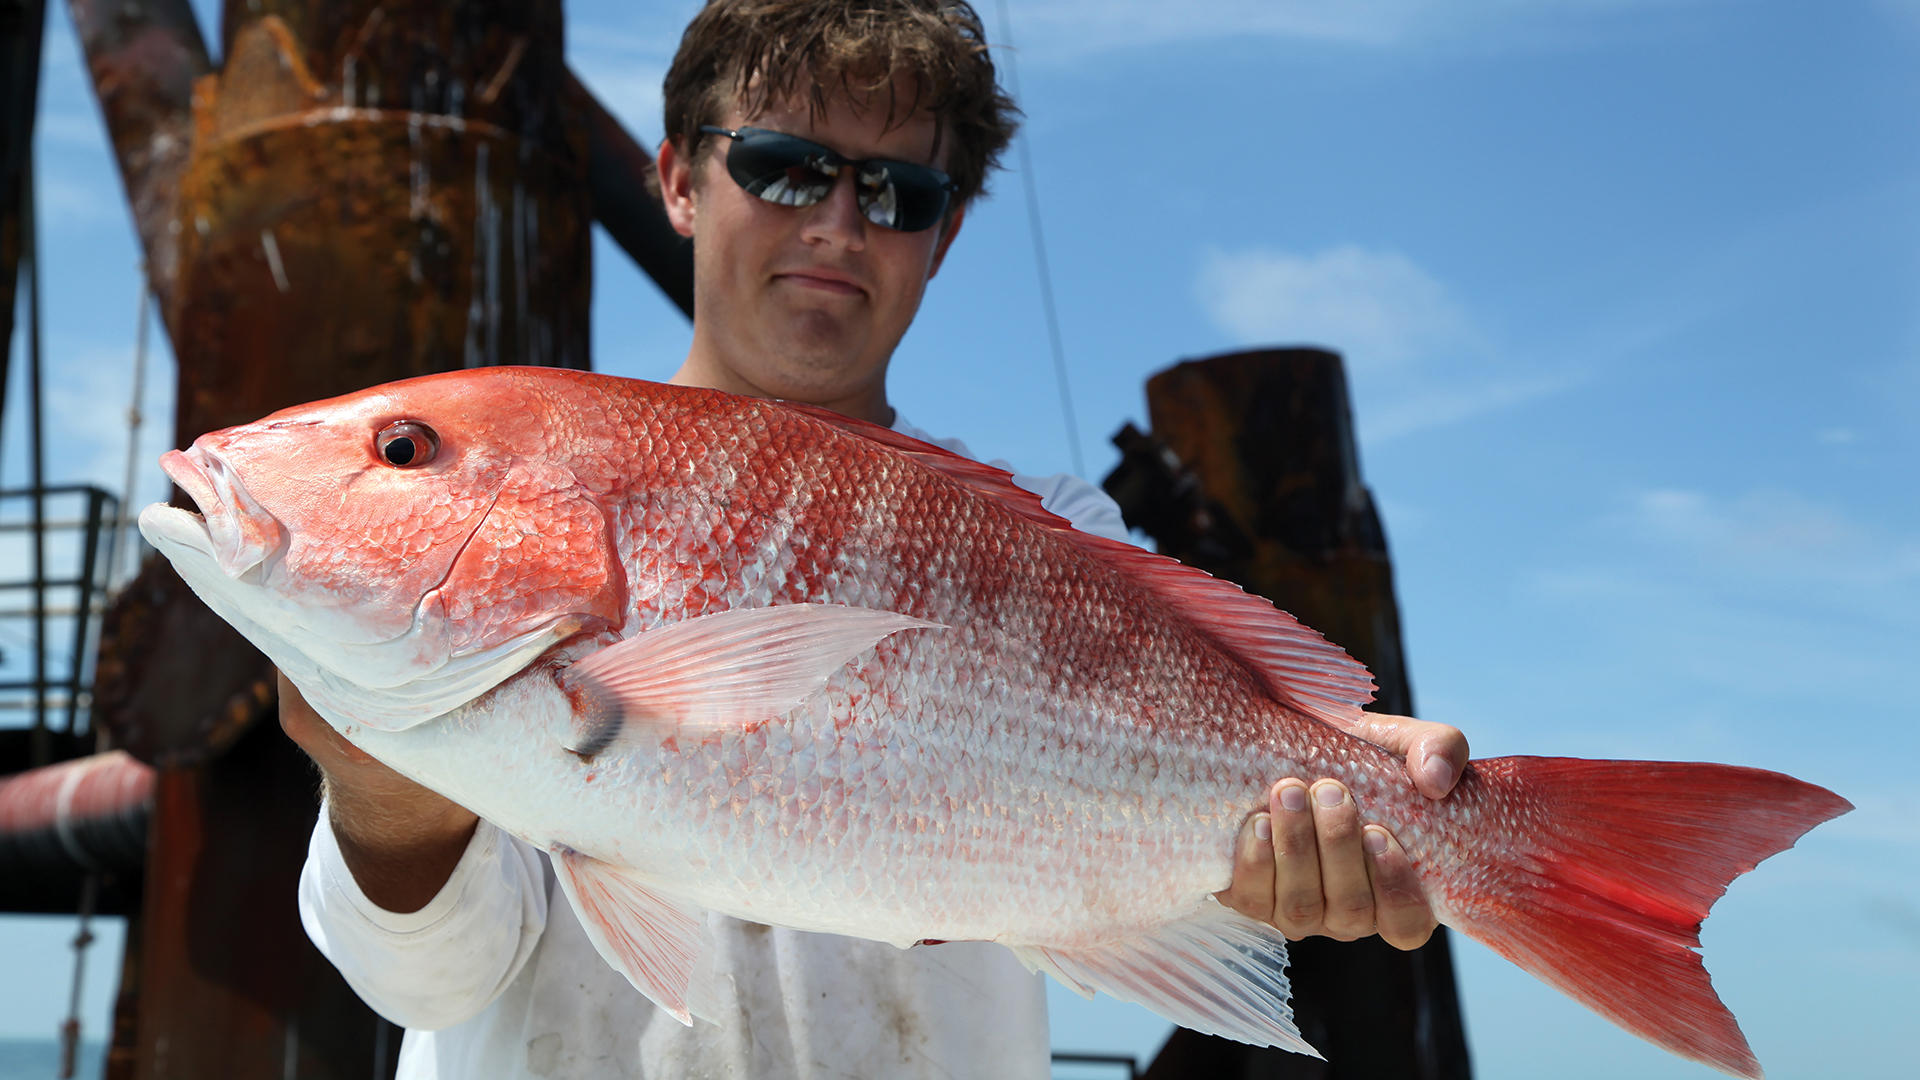 Auburn, AL, Fisheries student catches and holds up a Red Snapper marine fish, Lutjanus campechanus, on a dock in the Gulf of Mexico.